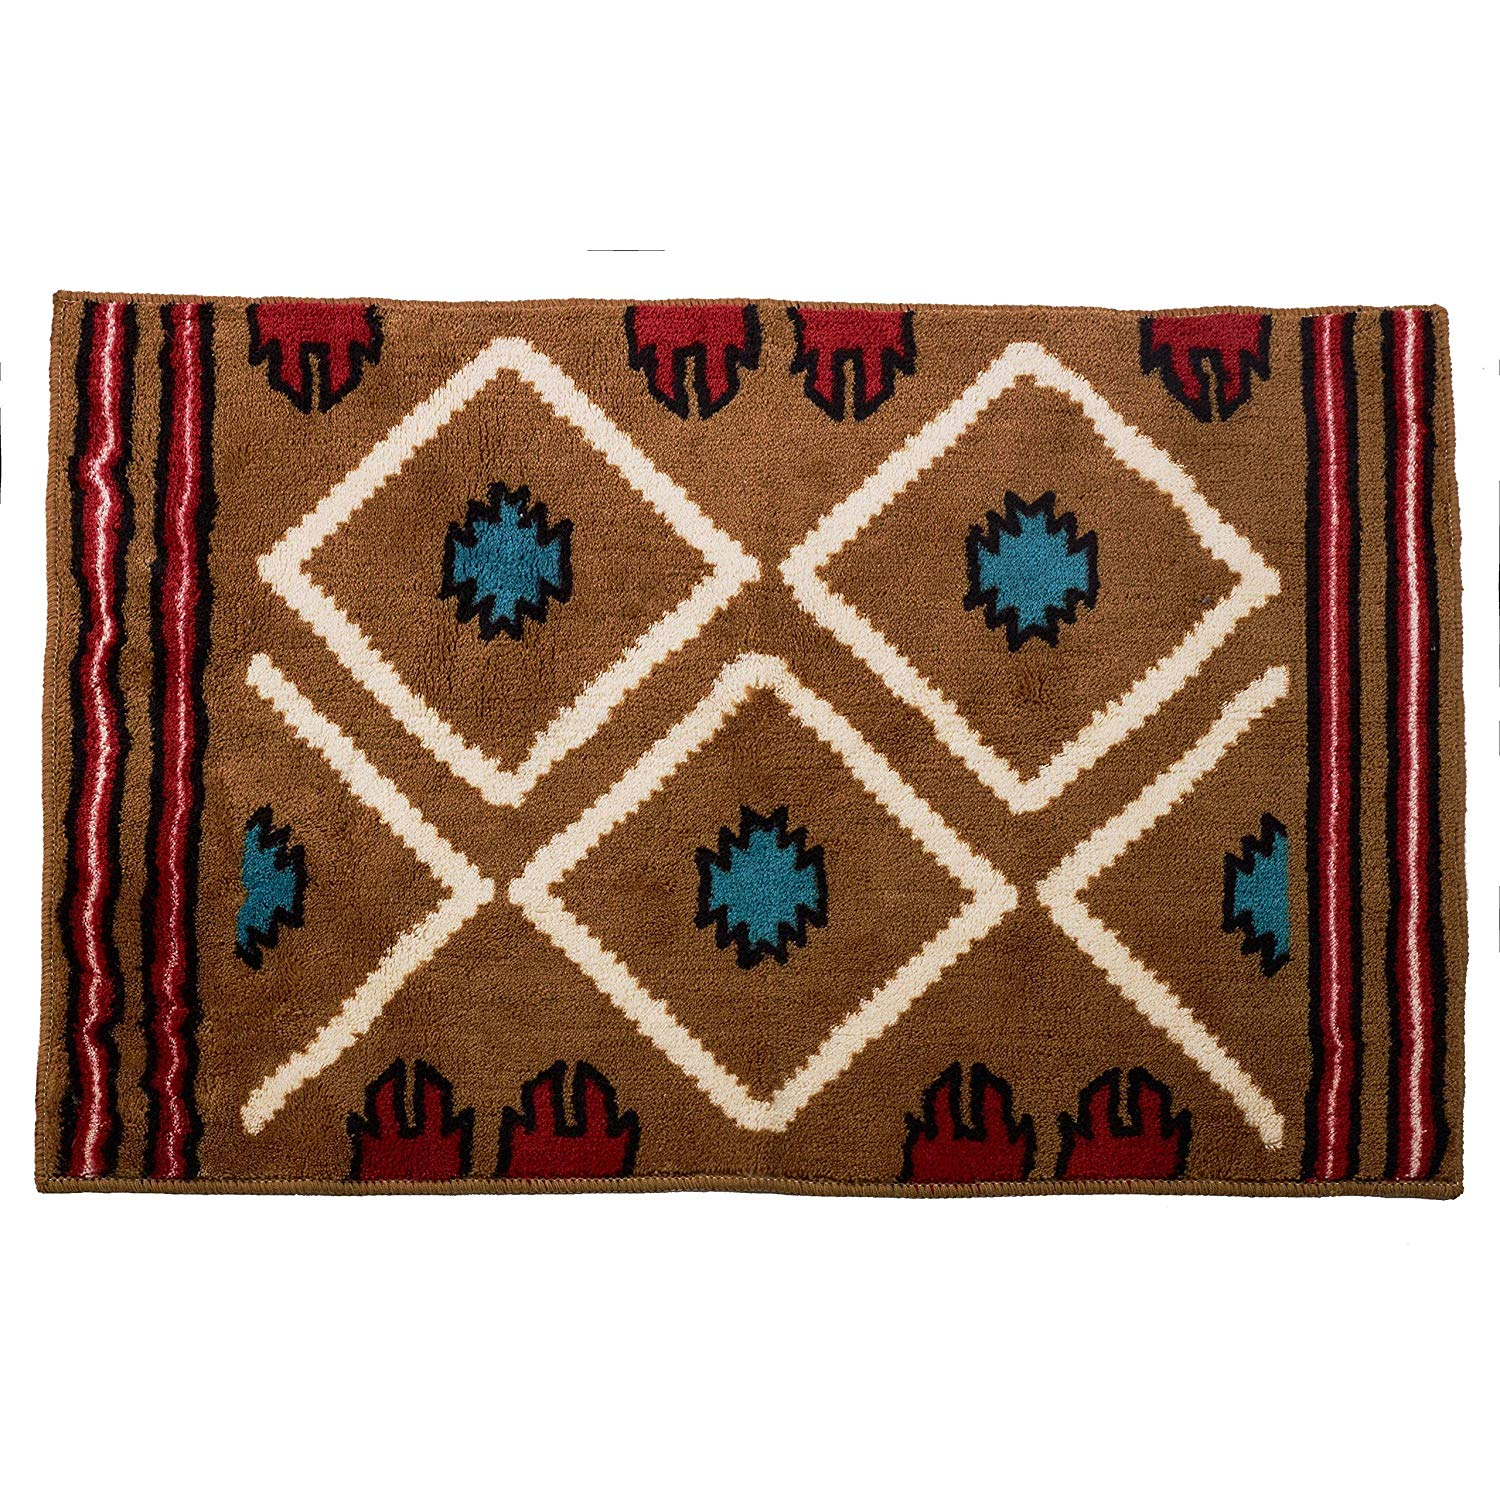 "Moroccan Floor Mat L Size Arabic Large Bath Mat Bathroom Rug Non Slip Shower Mat Oriental Carpet Brown 24"" x 36"" Acrylic"